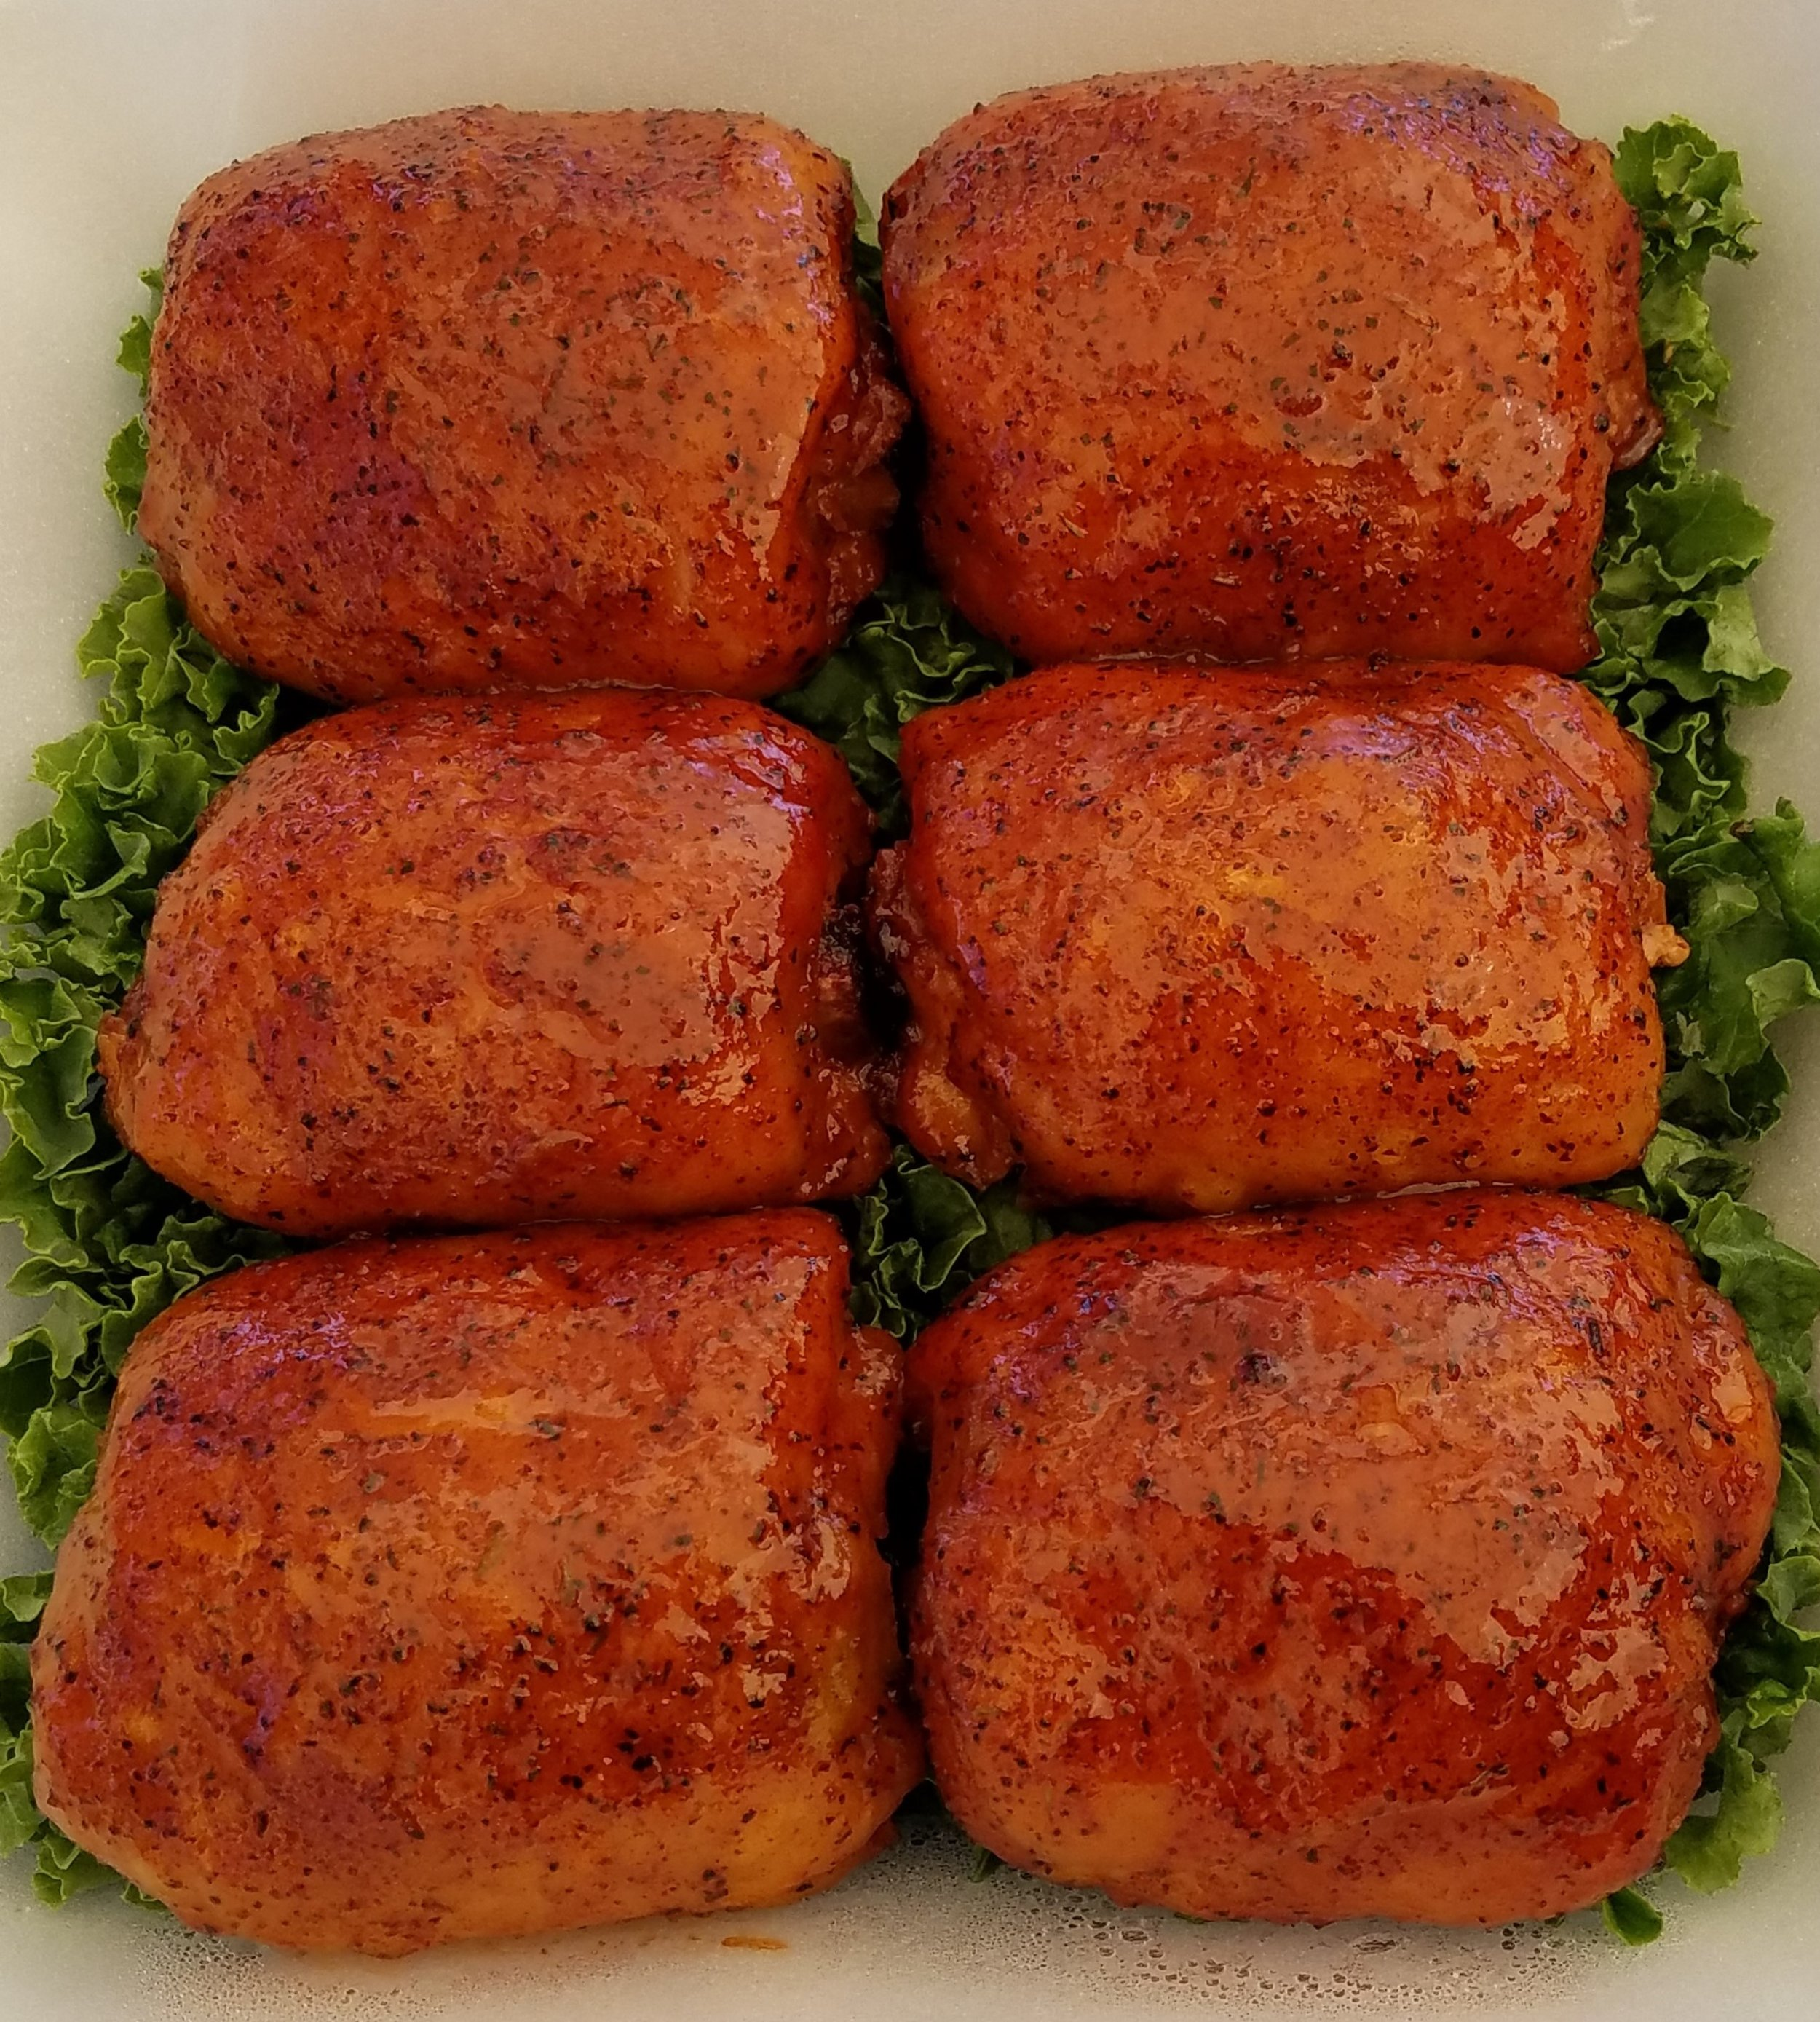 Chicken - Chicken thighs are the preferred cut at Wigglestick. A favorite for many,Wigglestick is something so many people enjoy, especially when it's barbecued. Chicken can either come in a half pound or a full one. You can also get it in tacos or add it to your meat sampler.